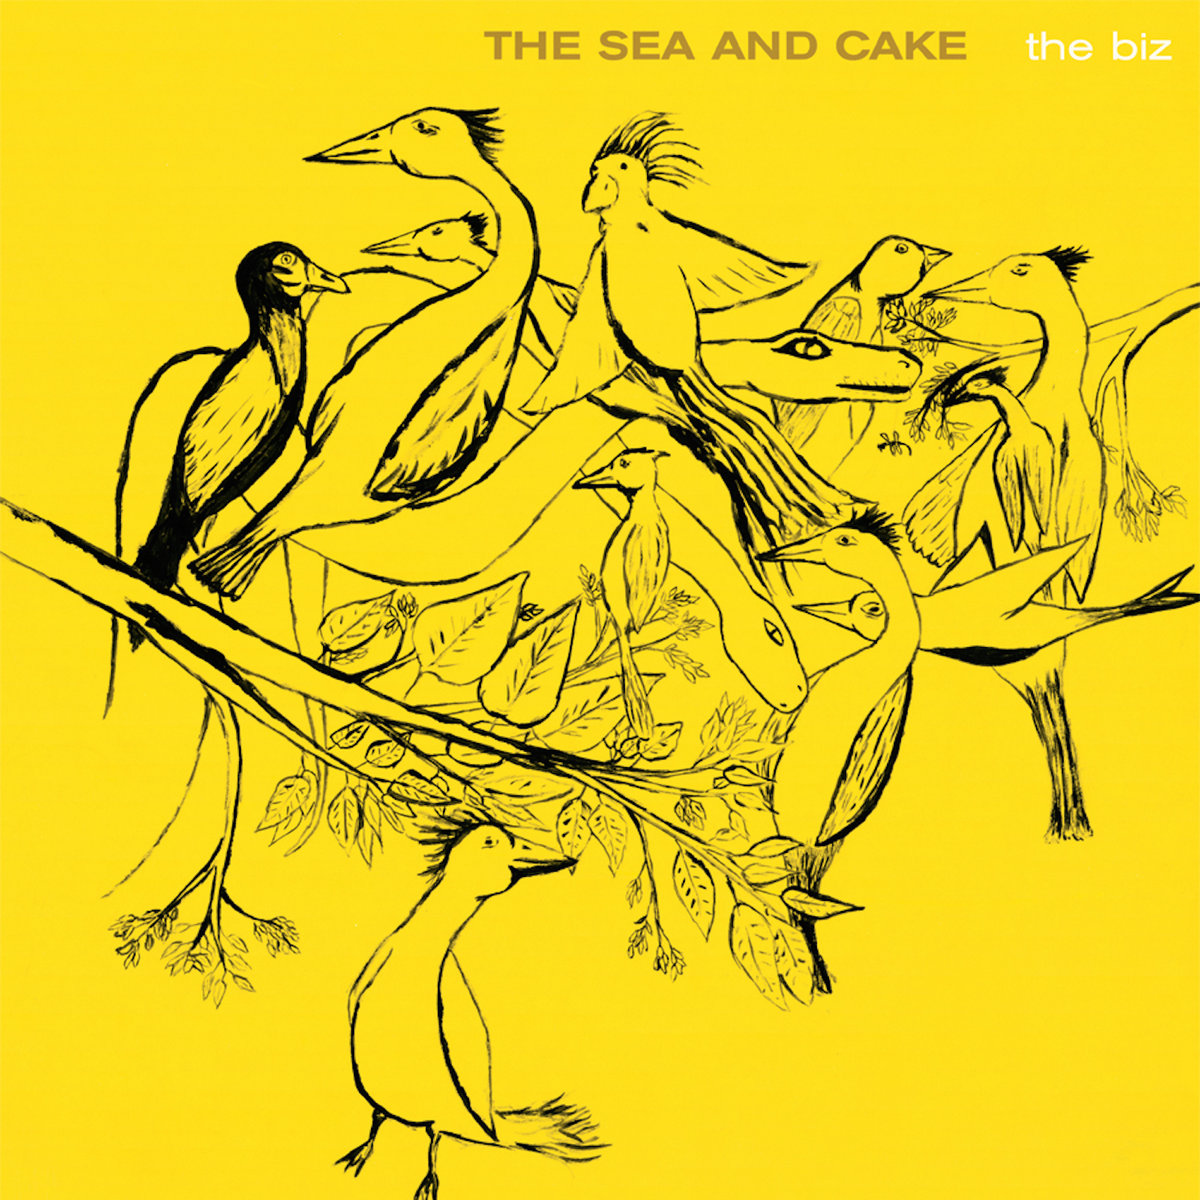 The Biz | The Sea and Cake